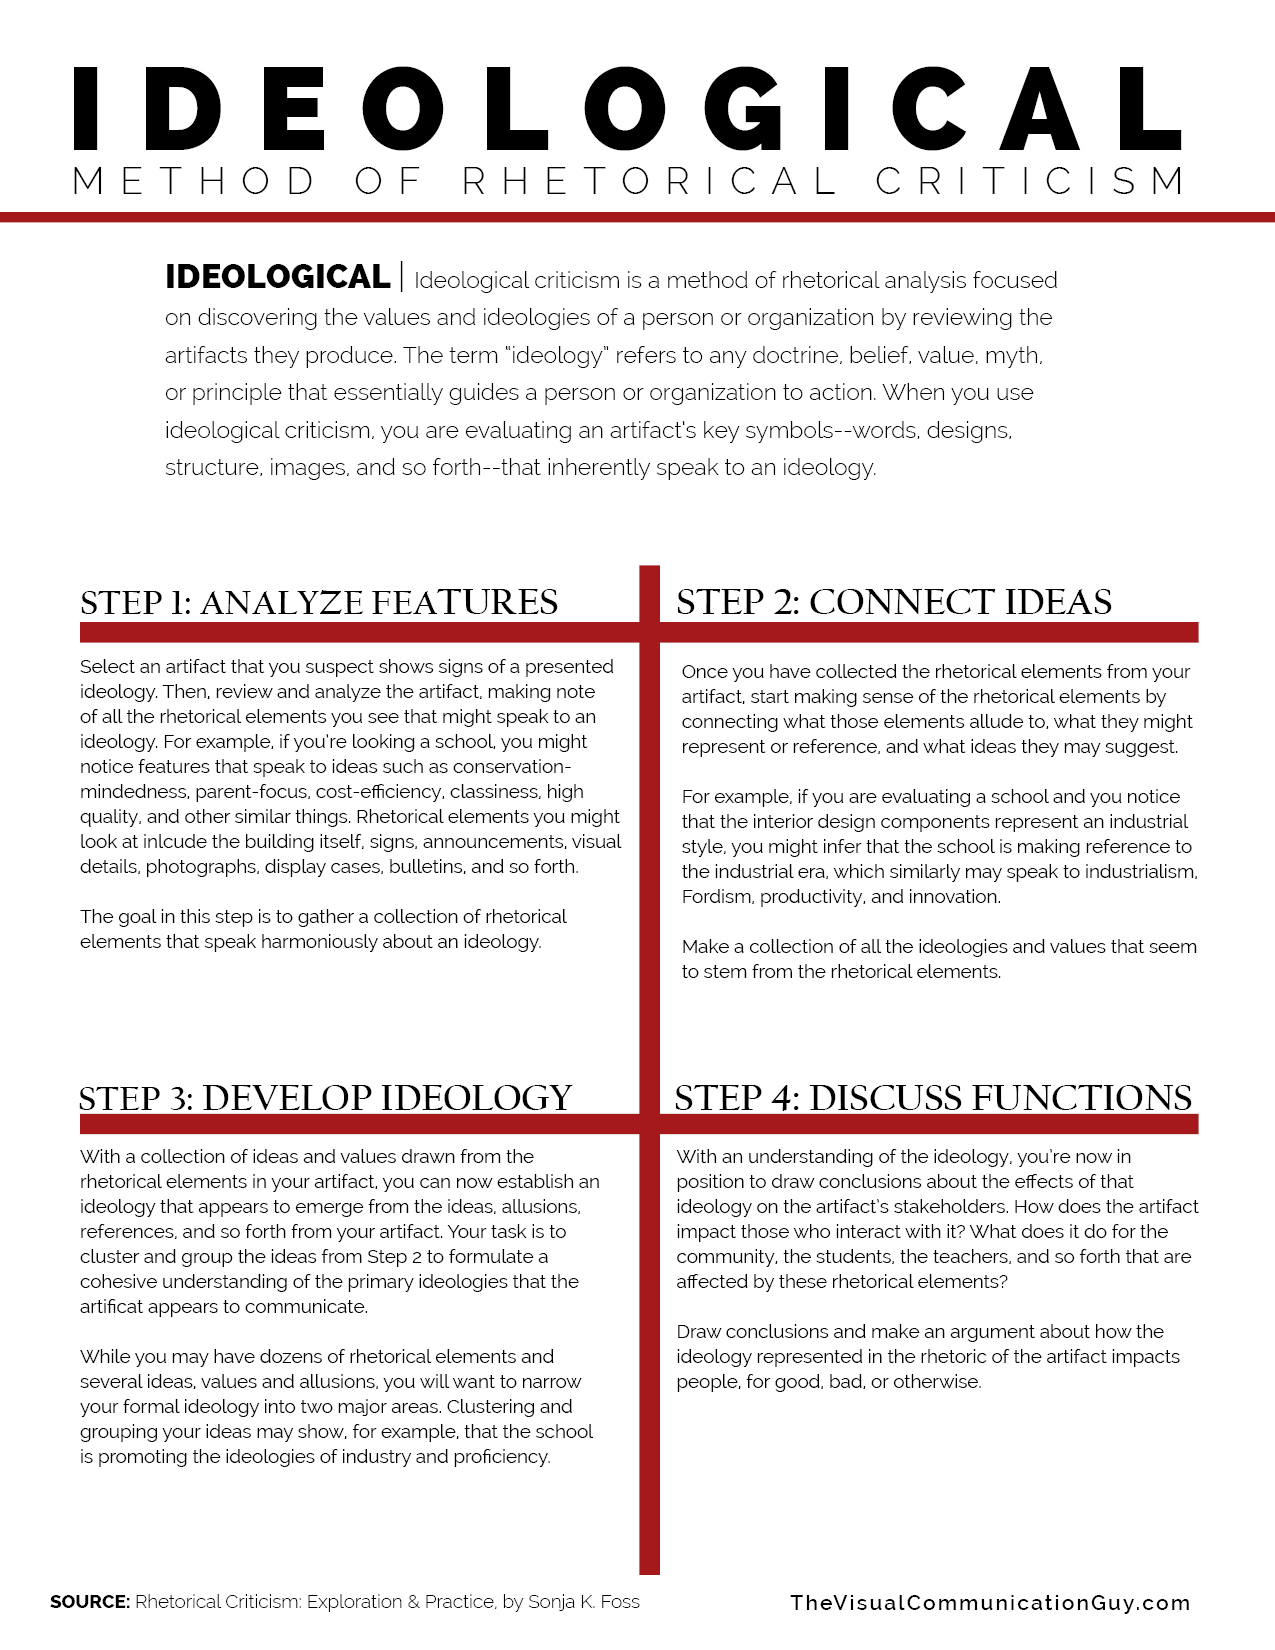 ideological analysis method of rhetorical criticism the visual  step 1 analyze features